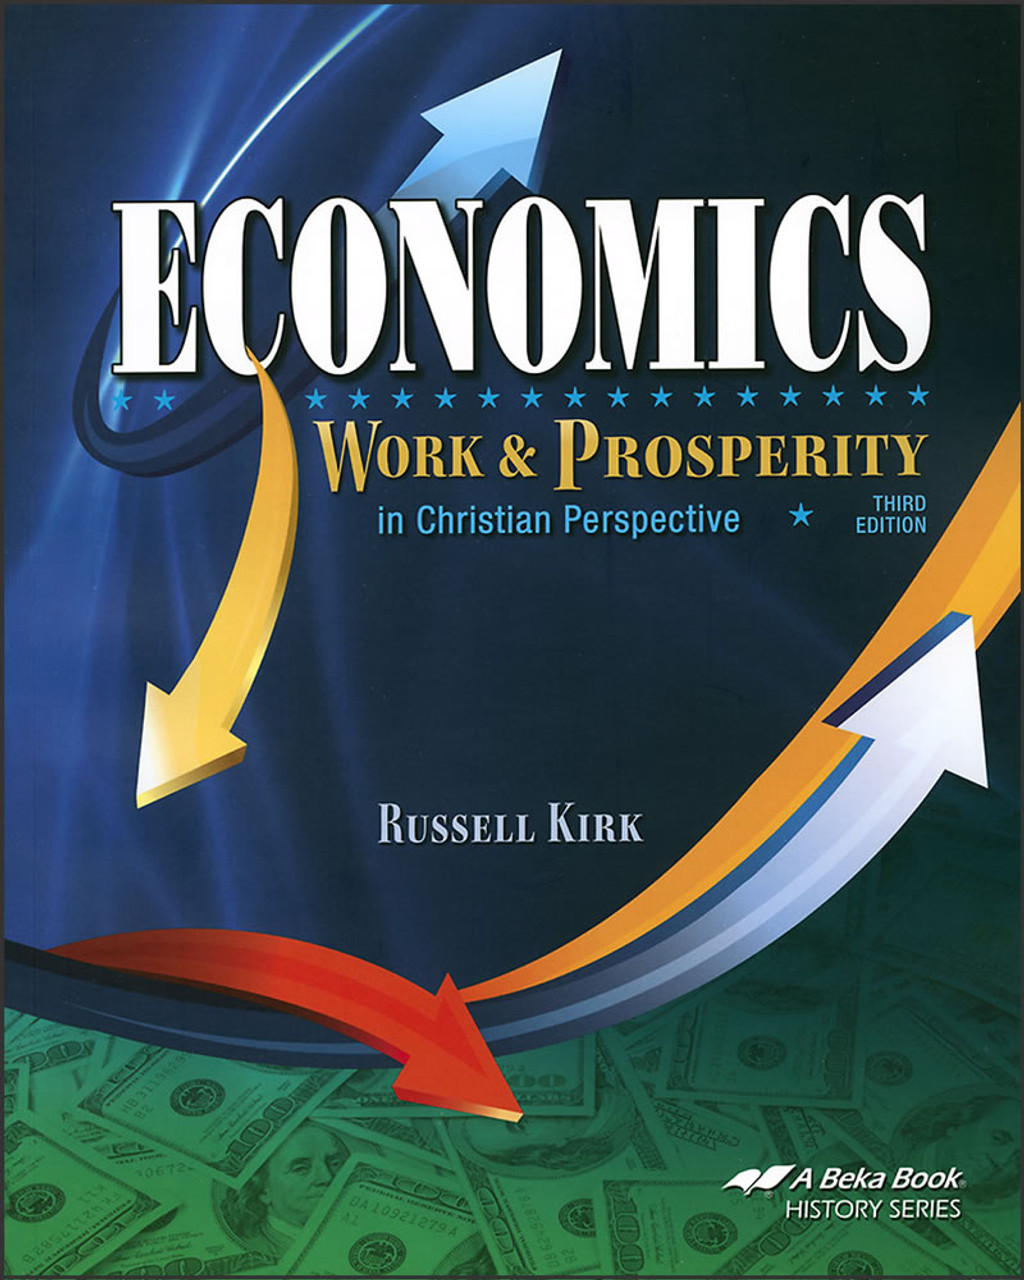 Economics: Work and Prosperity in Christian Perspective, 3rd edition